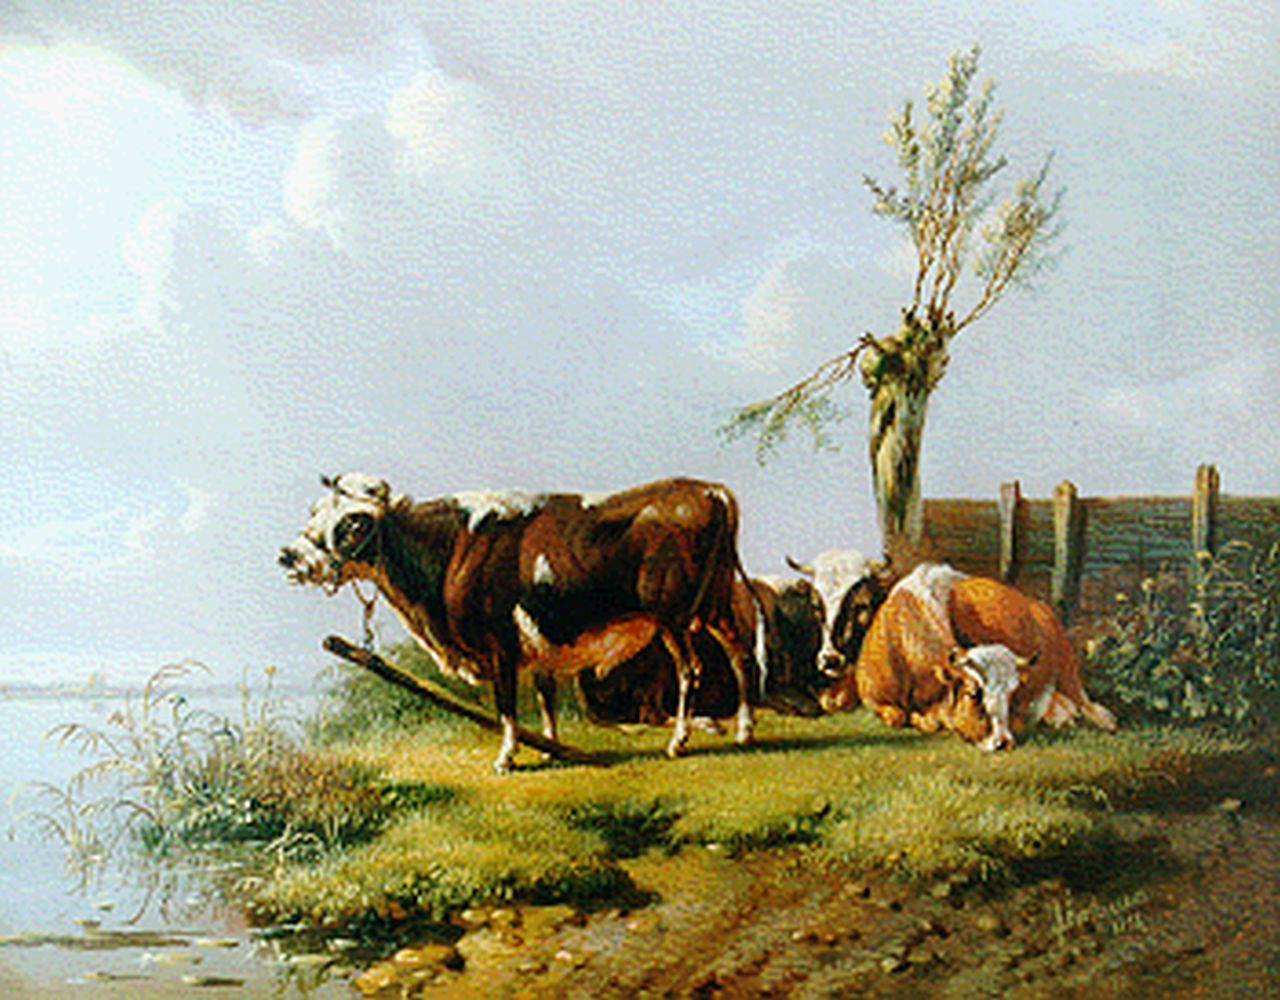 Verhoesen A.  | Albertus Verhoesen, Cattle on the riverbank, oil on panel 14.3 x 17.6 cm, signed l.r. and dated 1856